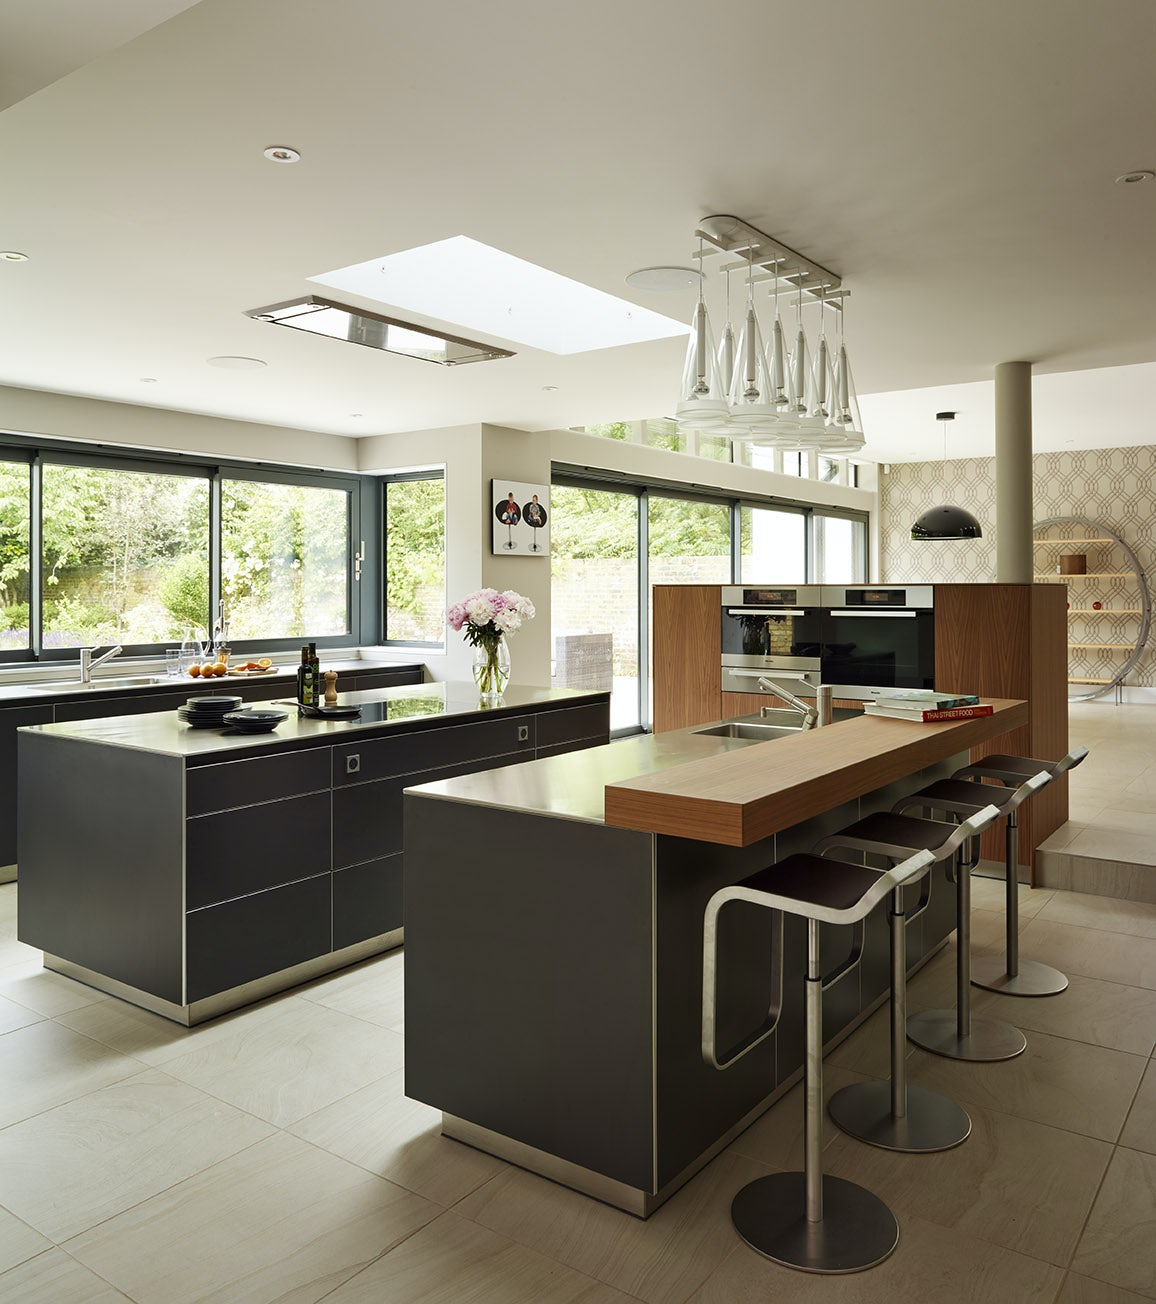 Bulthaup Kitchens Wilmslow